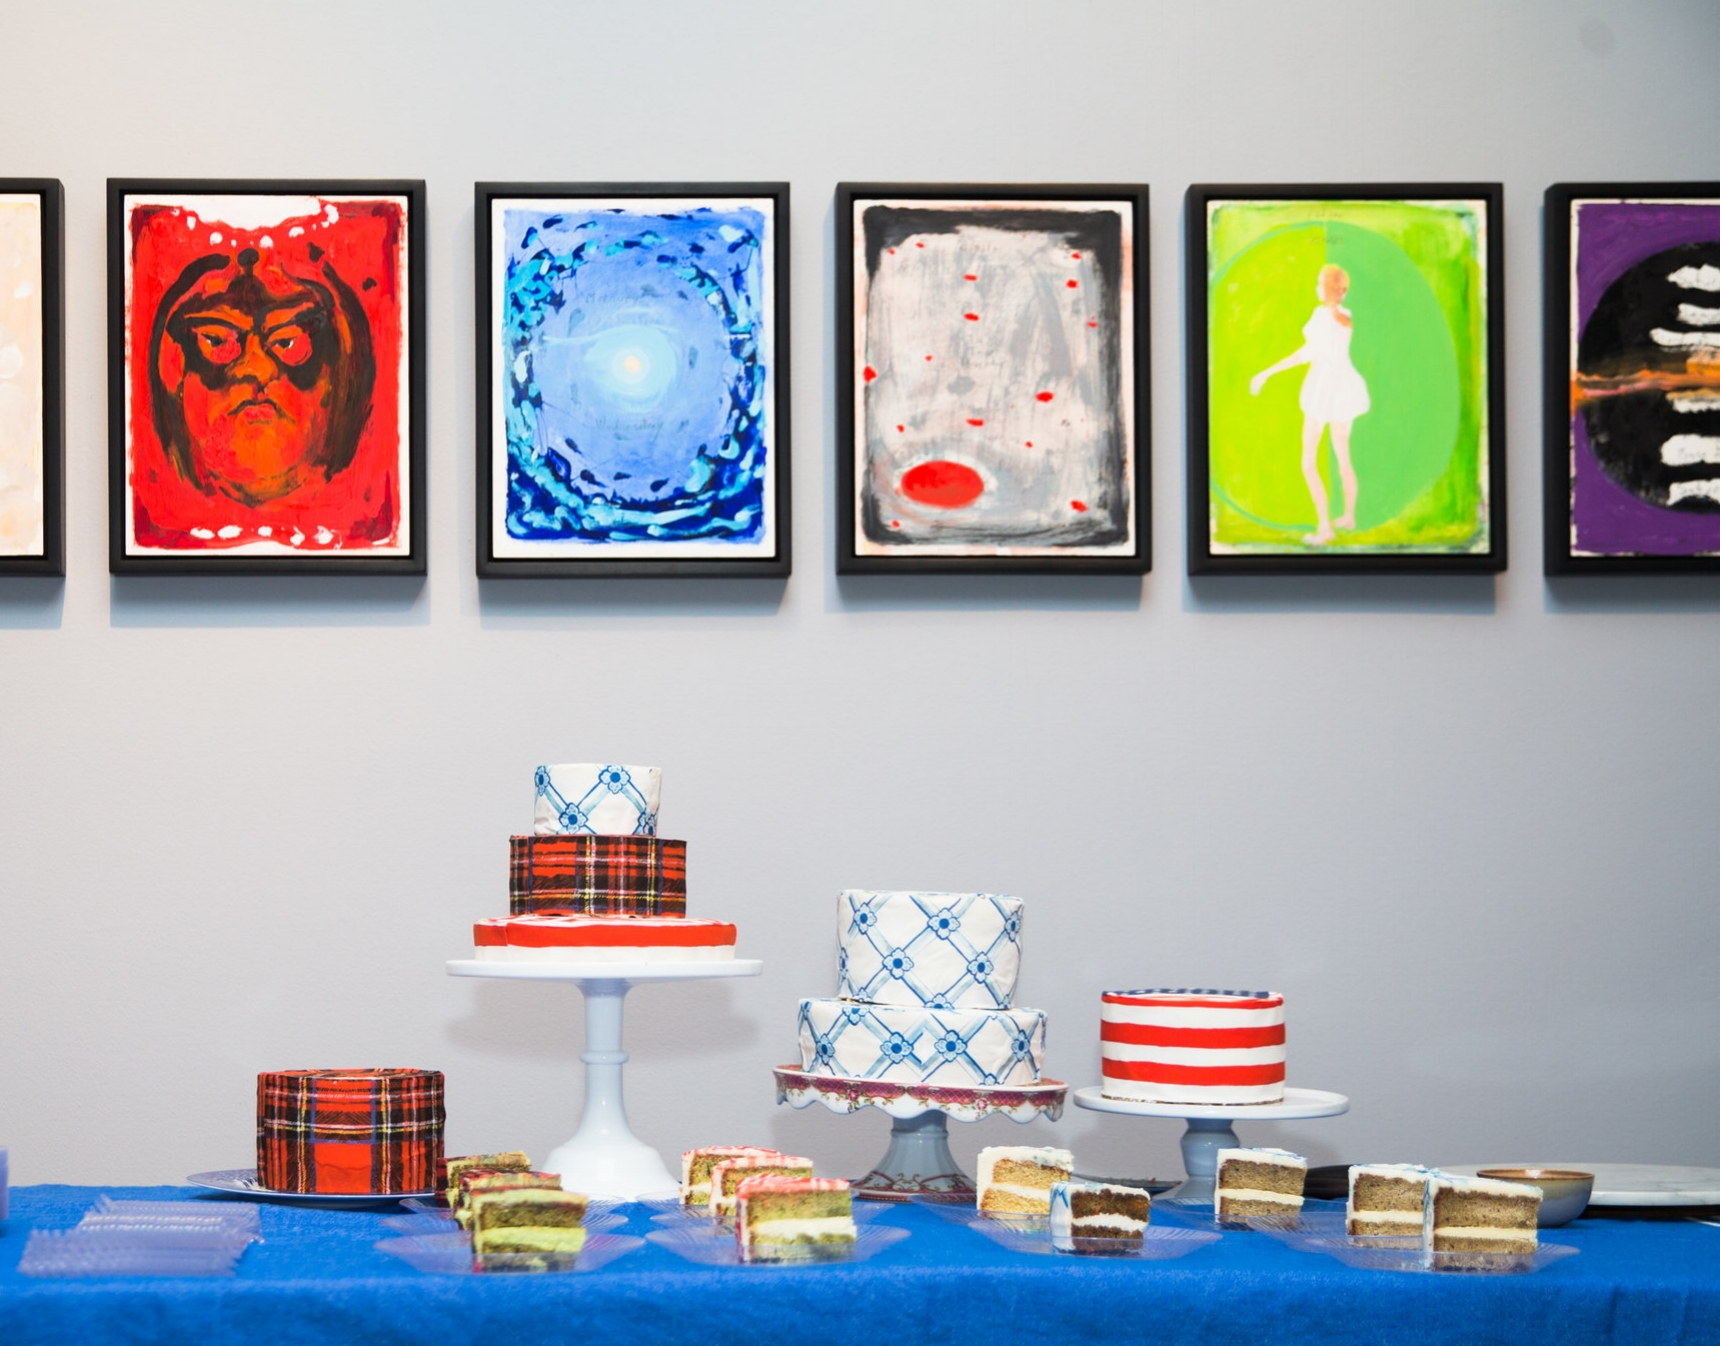 Cake with  Chefanie Sheets  in front of Verne Dawson series at Dickinson Roundell. Photo credit: Noa Griffel for BFA